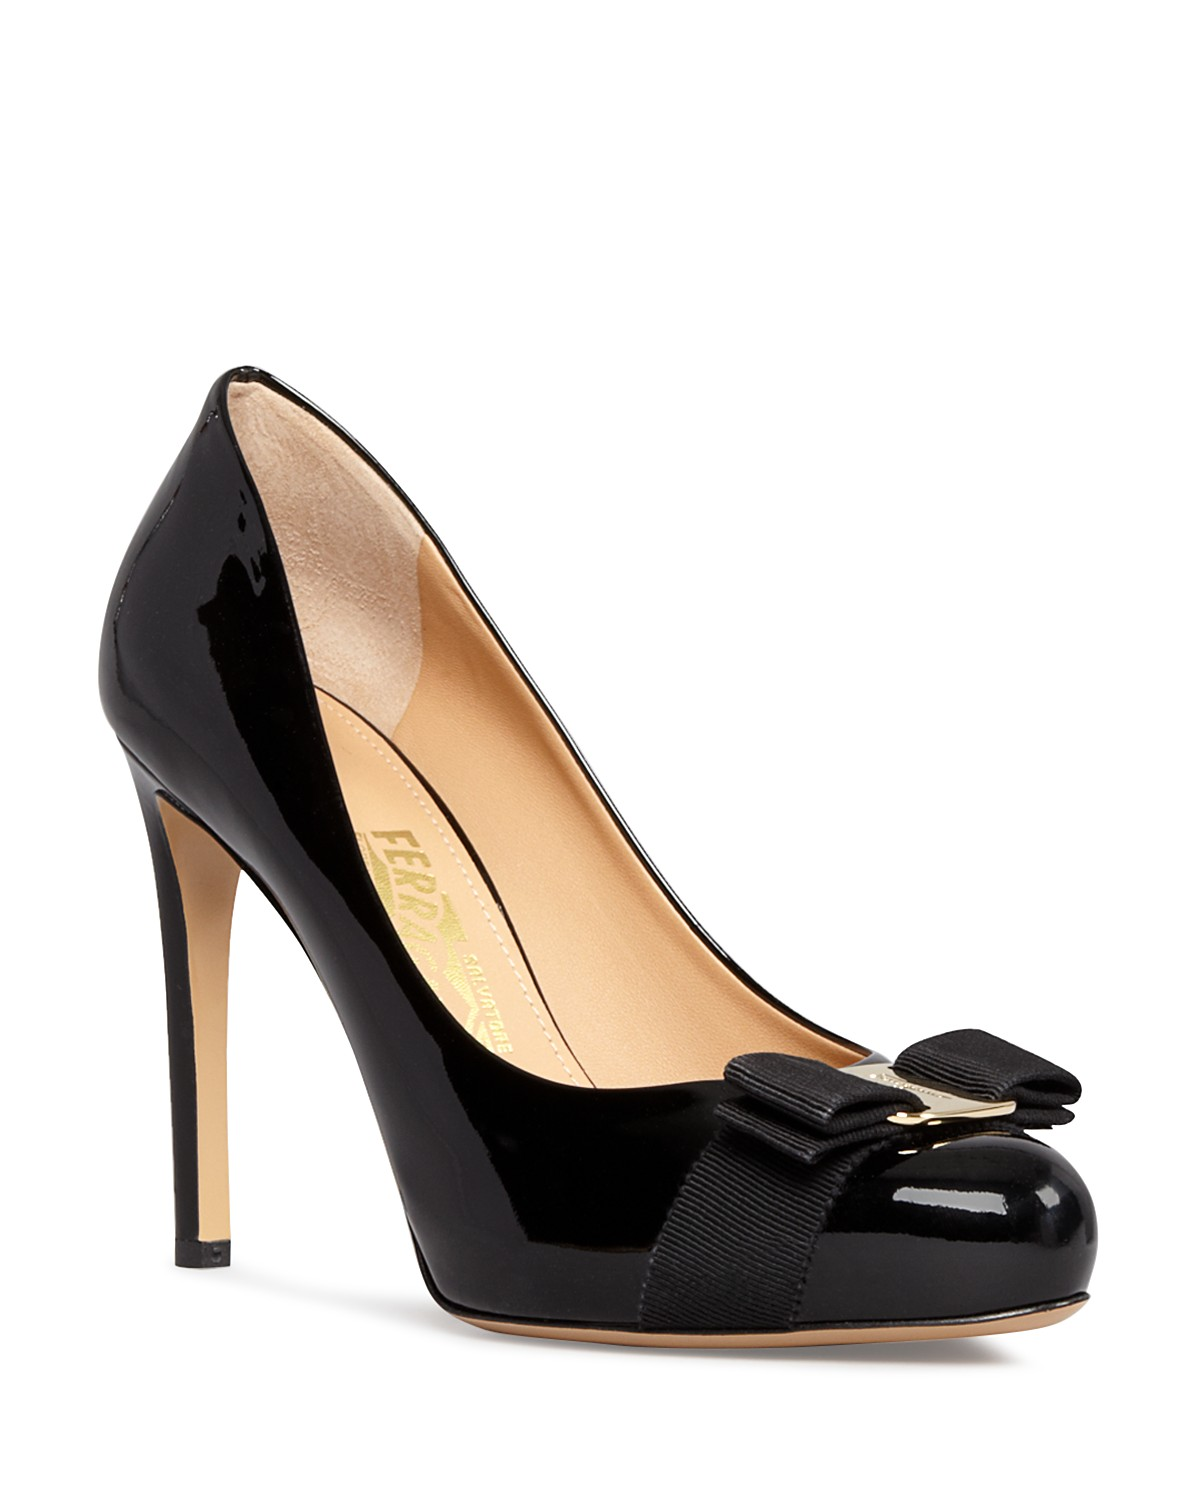 Salvatore Ferragamo on sale up to 40% OFF